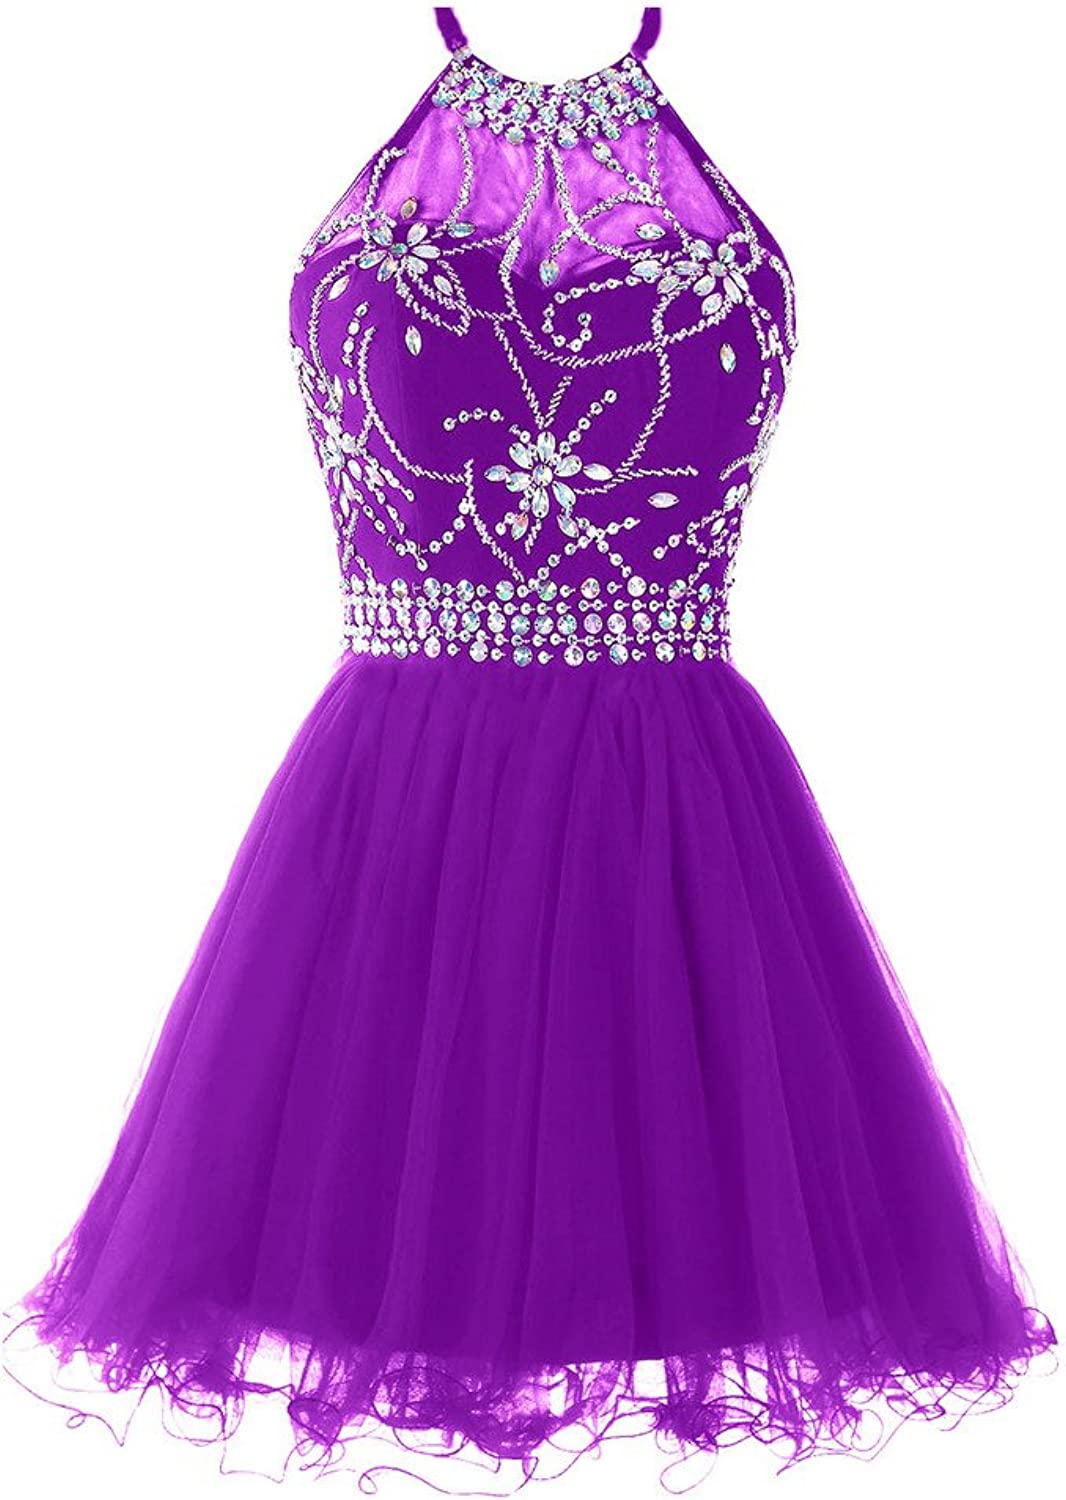 Musever Women's Halter Short Homecoming Dress Beading Tulle Prom Dress Purple US 6